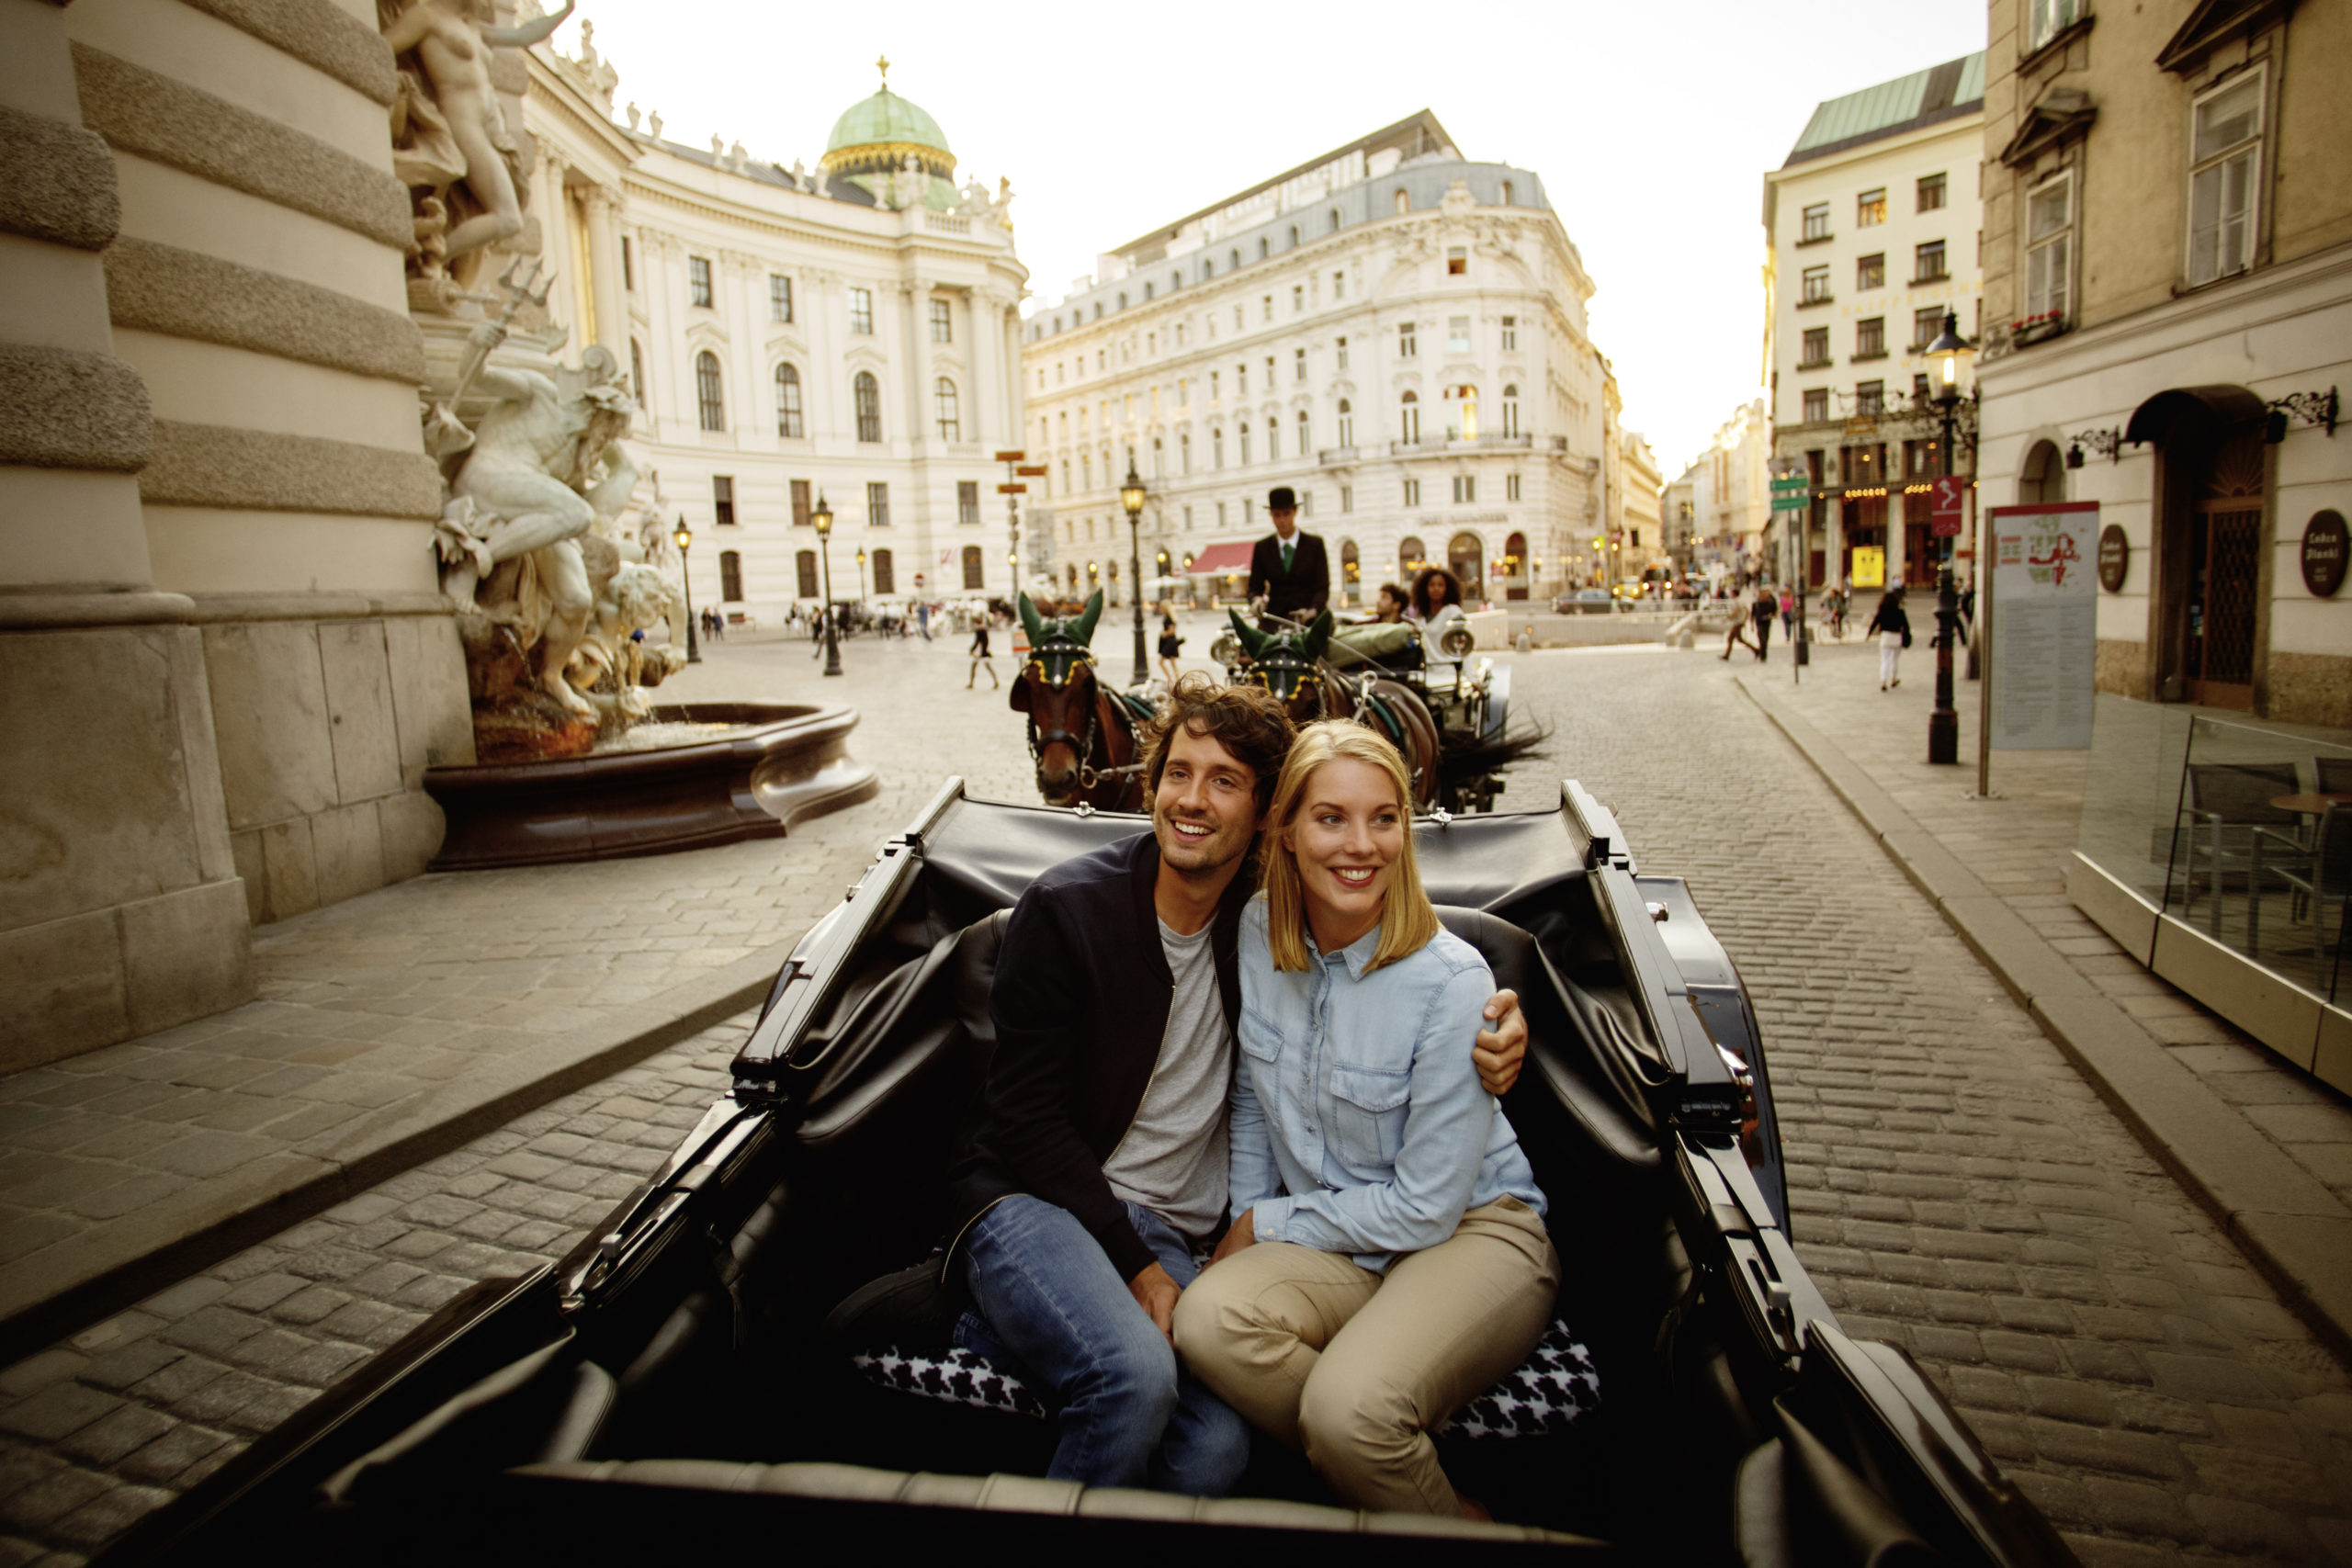 Horse and carriage ride outside the Hofburg Imperial Palace, Vienna. Photo Austrian National Tourist Office